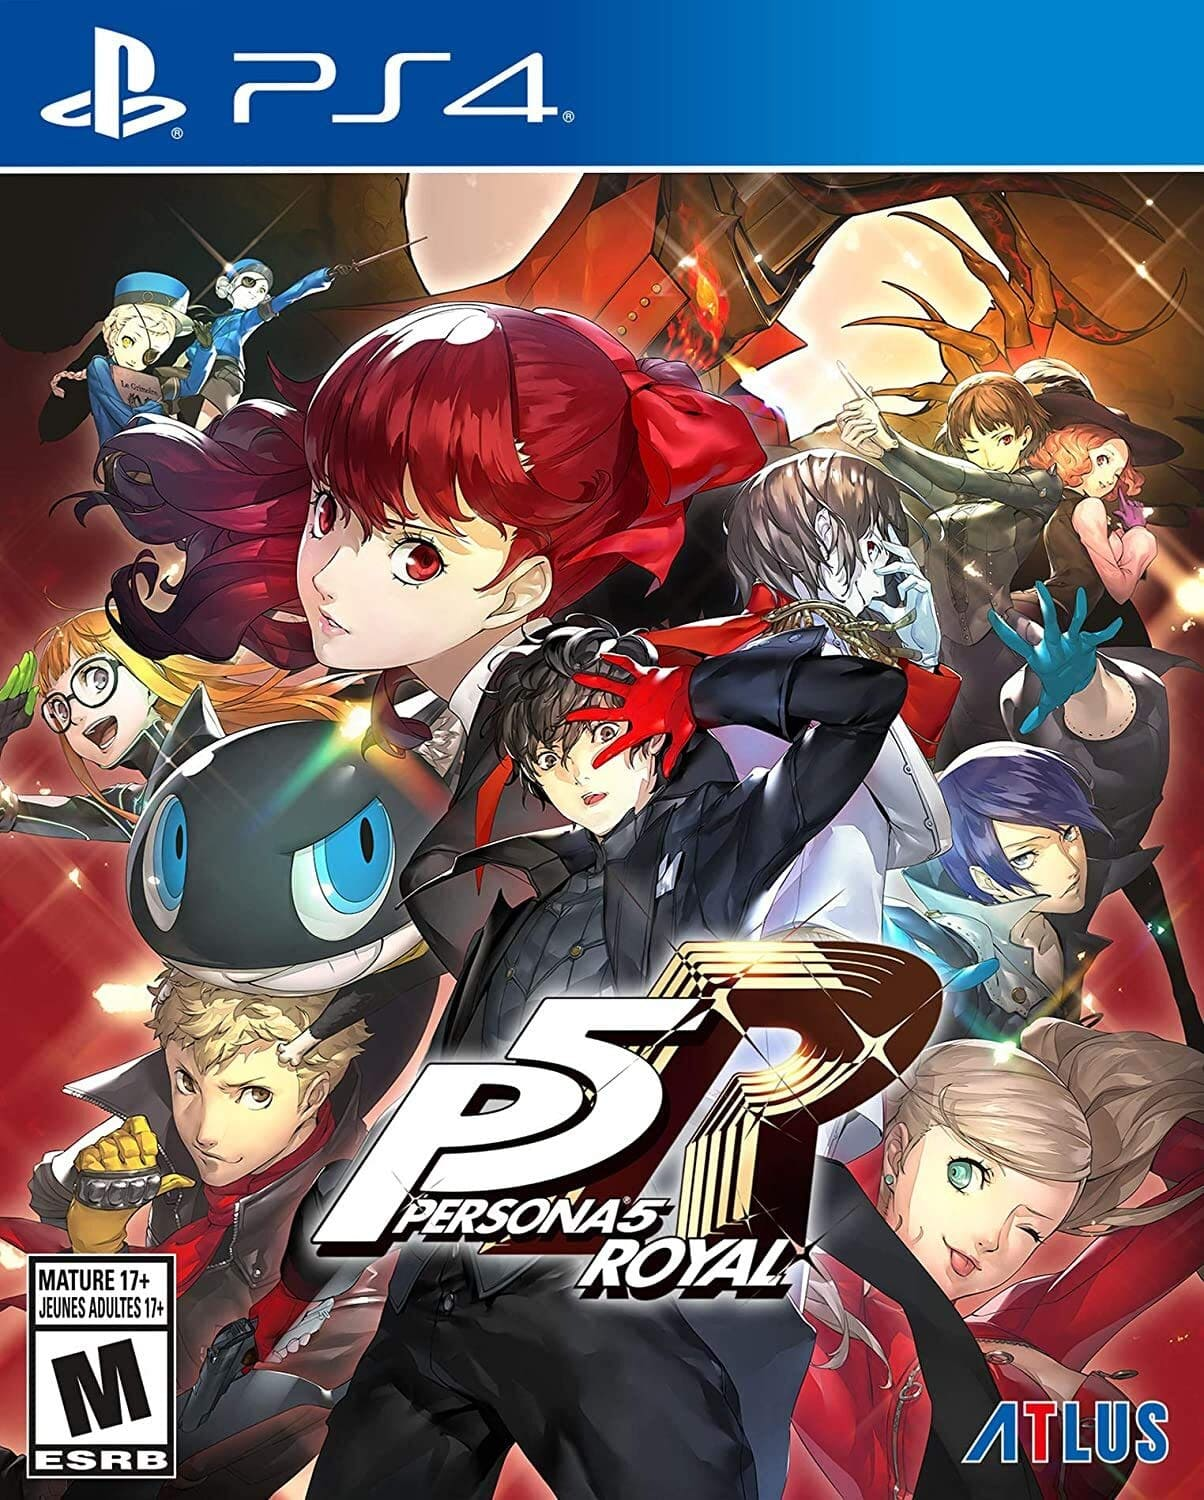 Persona®5 Royal Deluxe Edition (PS4 Digital Download) $31.49